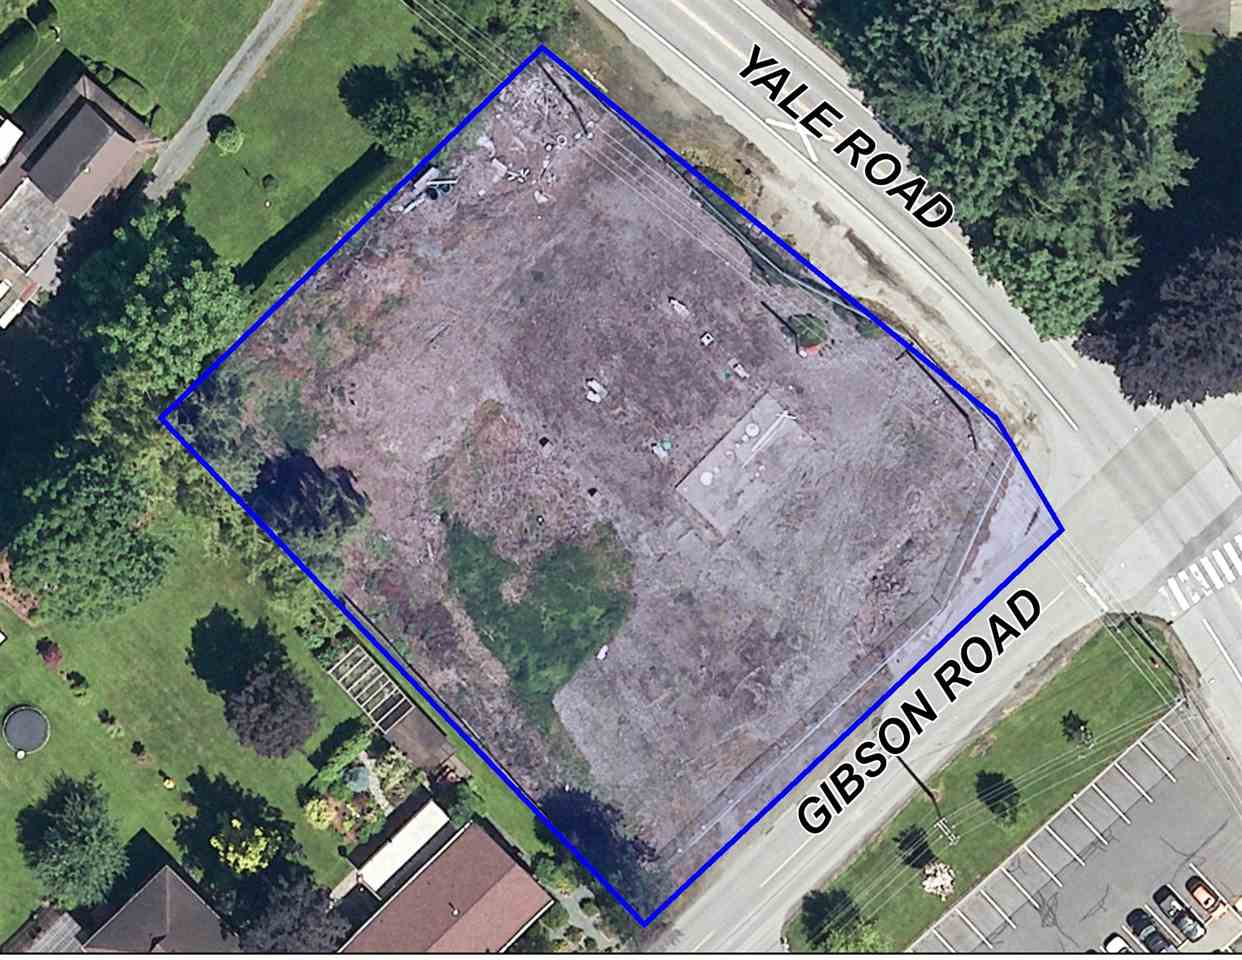 Bare 0.84 acre C52 zoned lot on a busy street with a 2017 Yale Rd. daily traffic court of 5757. Was approved in the past for a gas station with a Tim Hortons & a residence above. Previously an Esso gas station. Bring your ideas to this commercially zoned property.